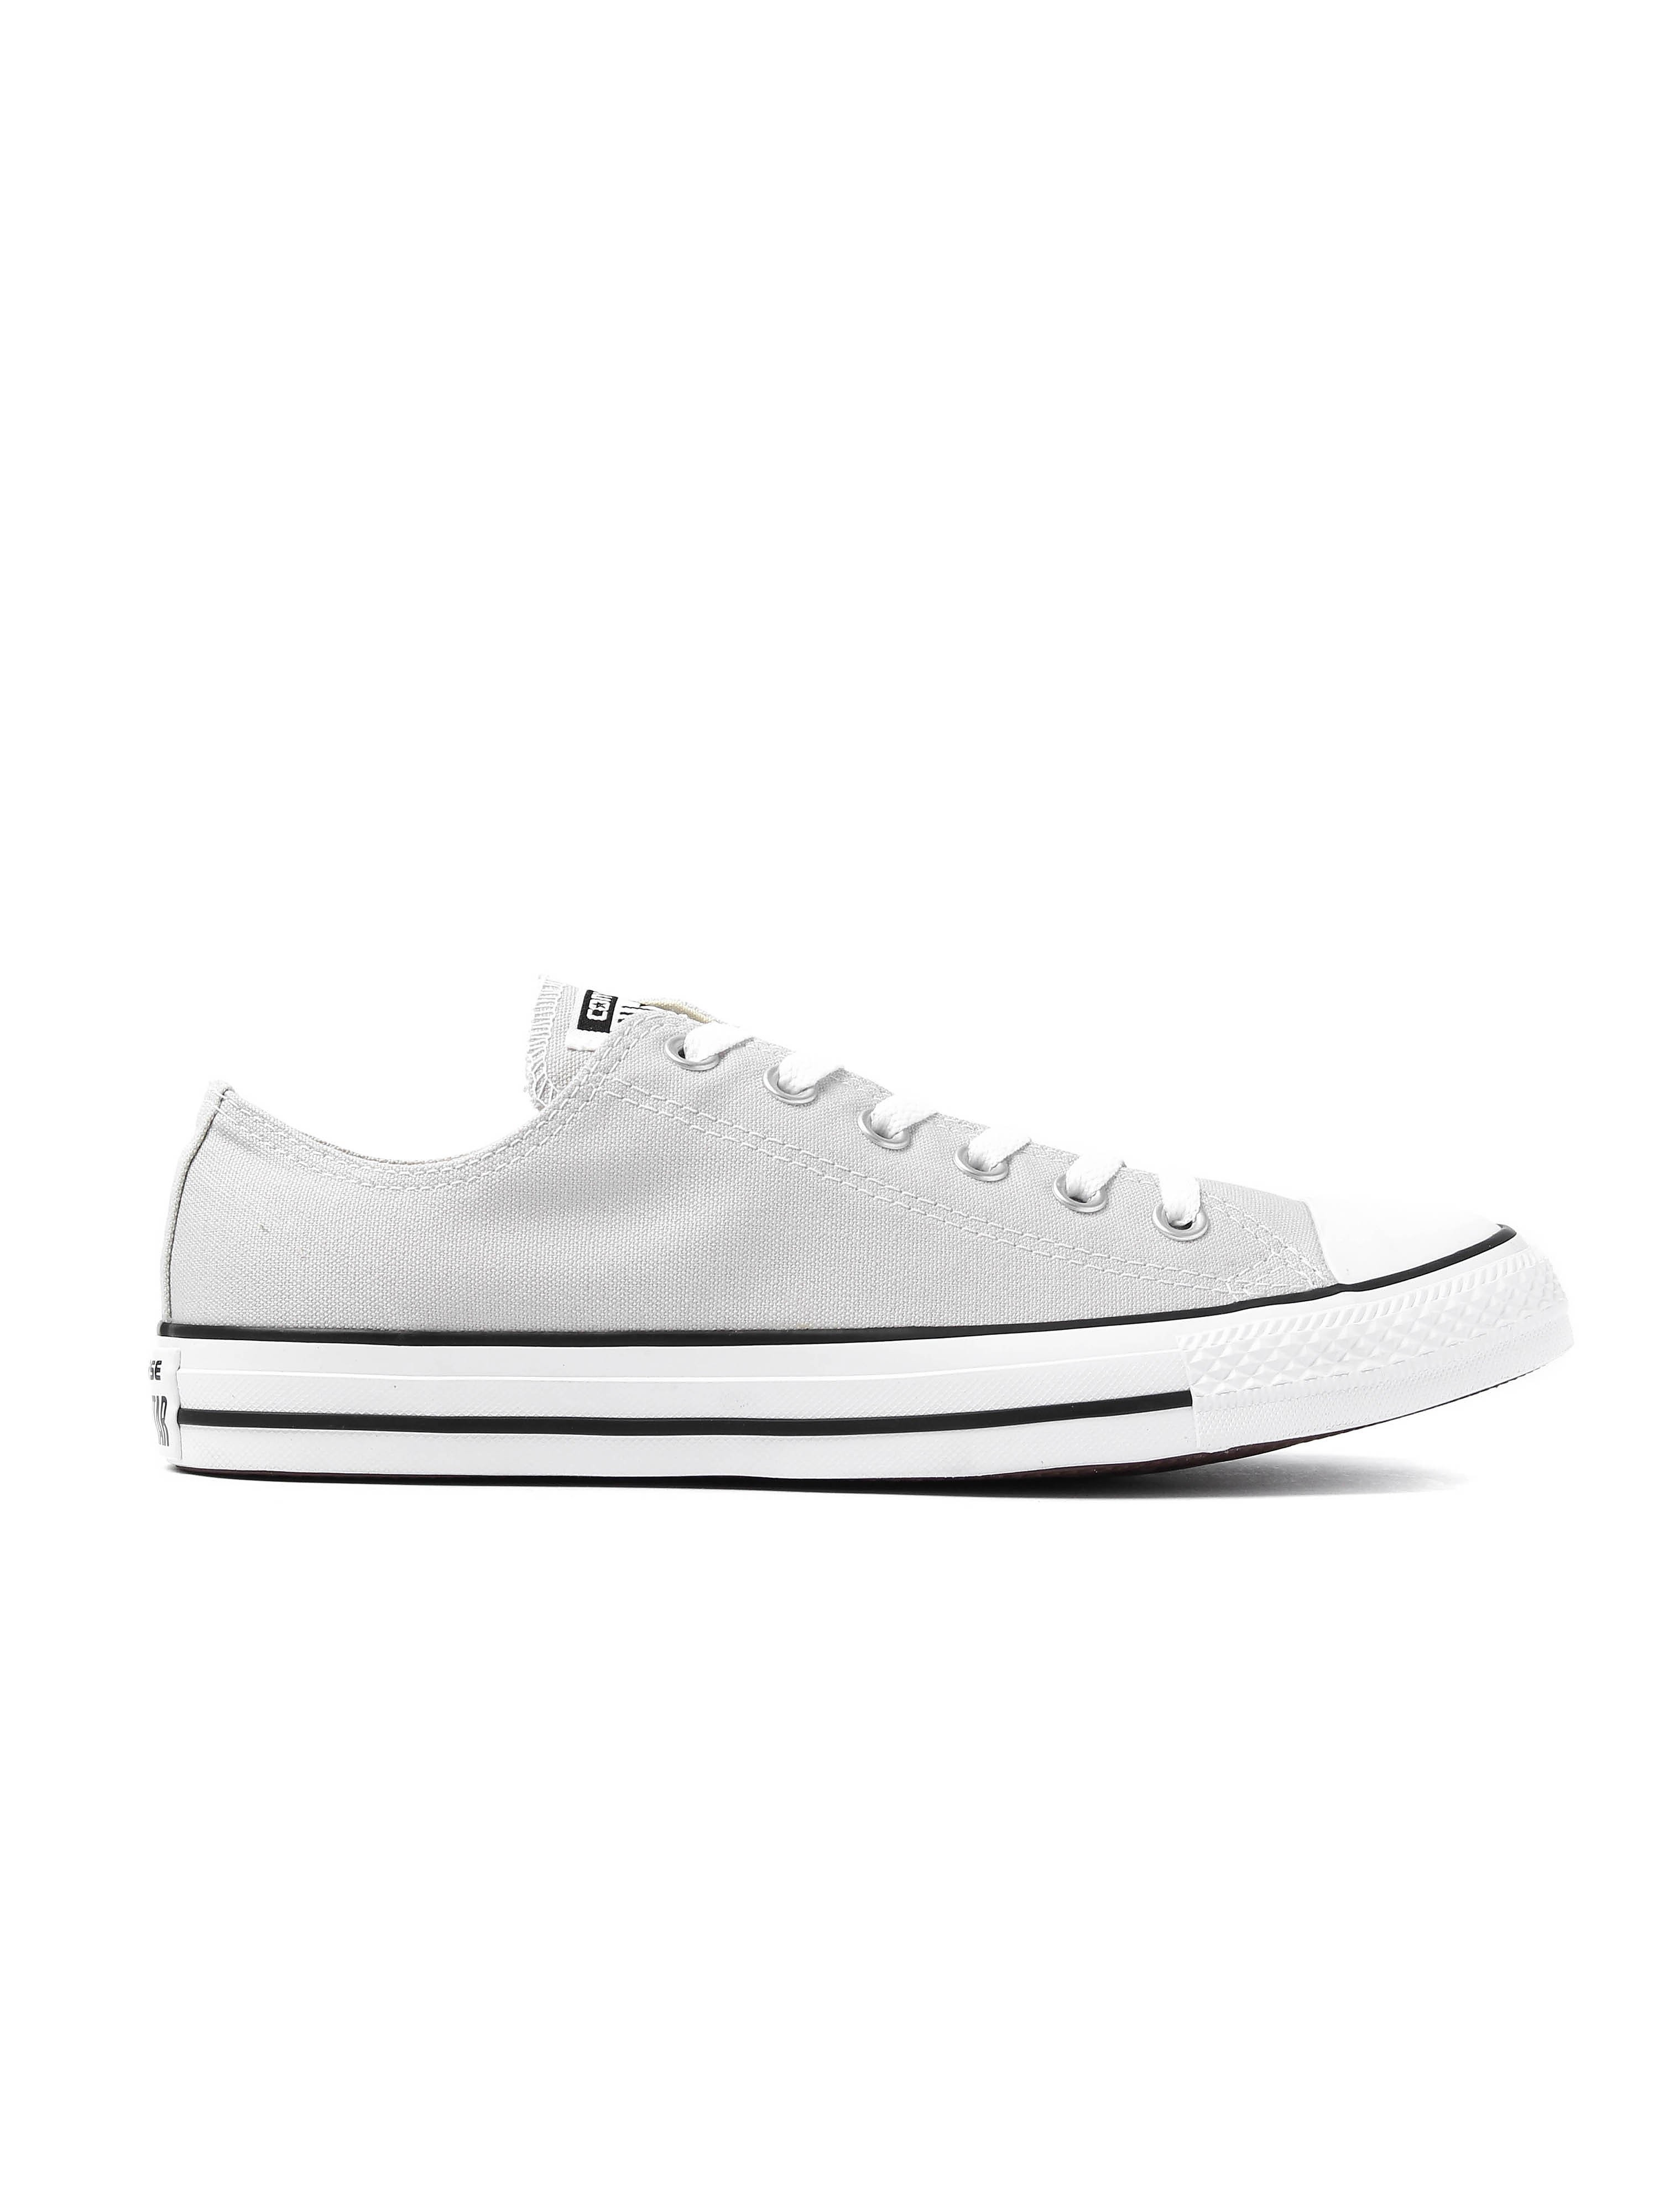 Converse Men's Chuck Taylor All Star OX - Pale Putty